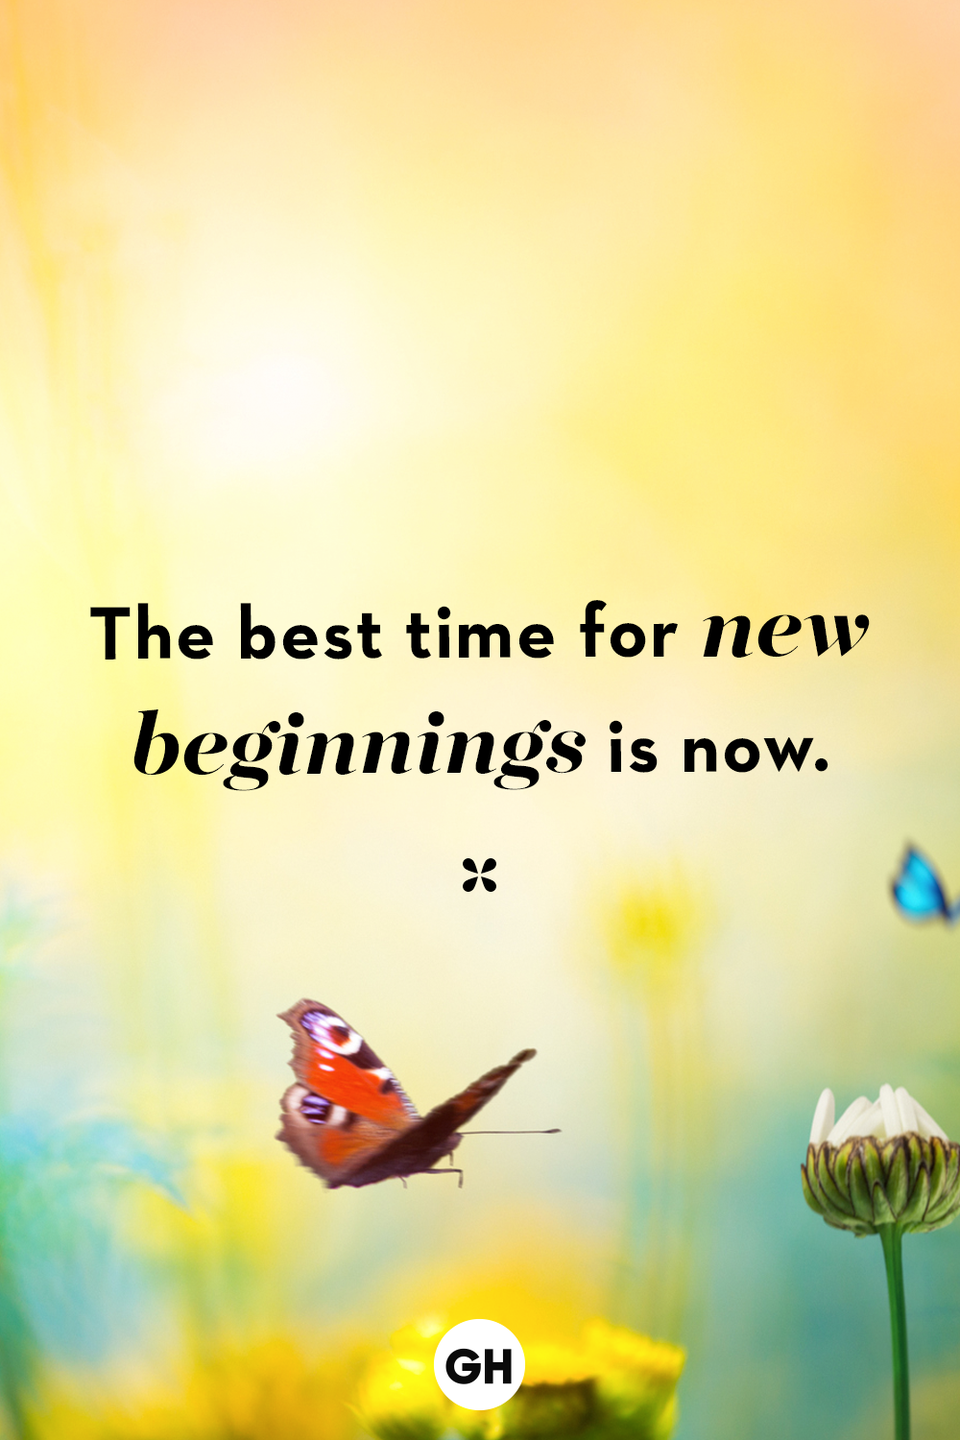 <p>The best time for new beginnings is now.</p>